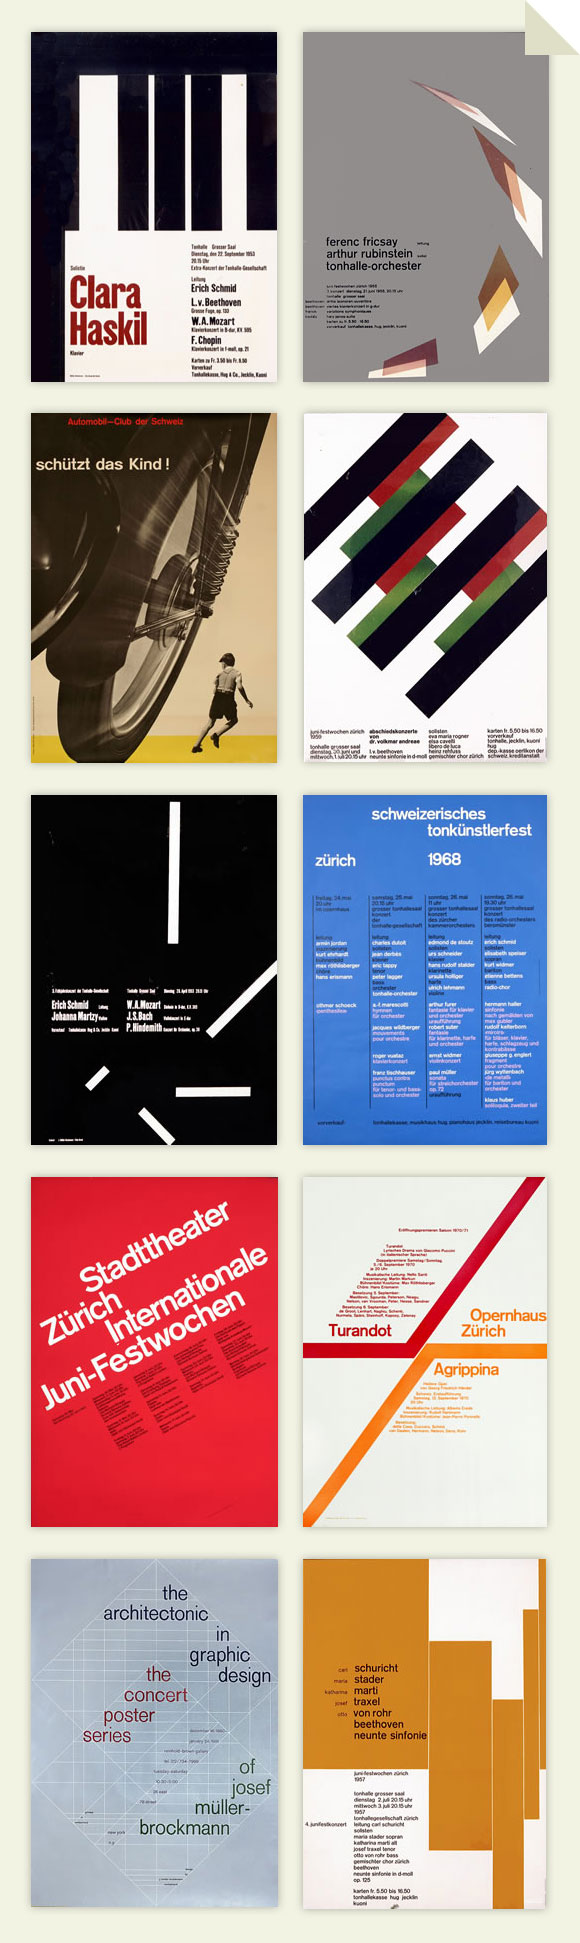 Brockmann Posters